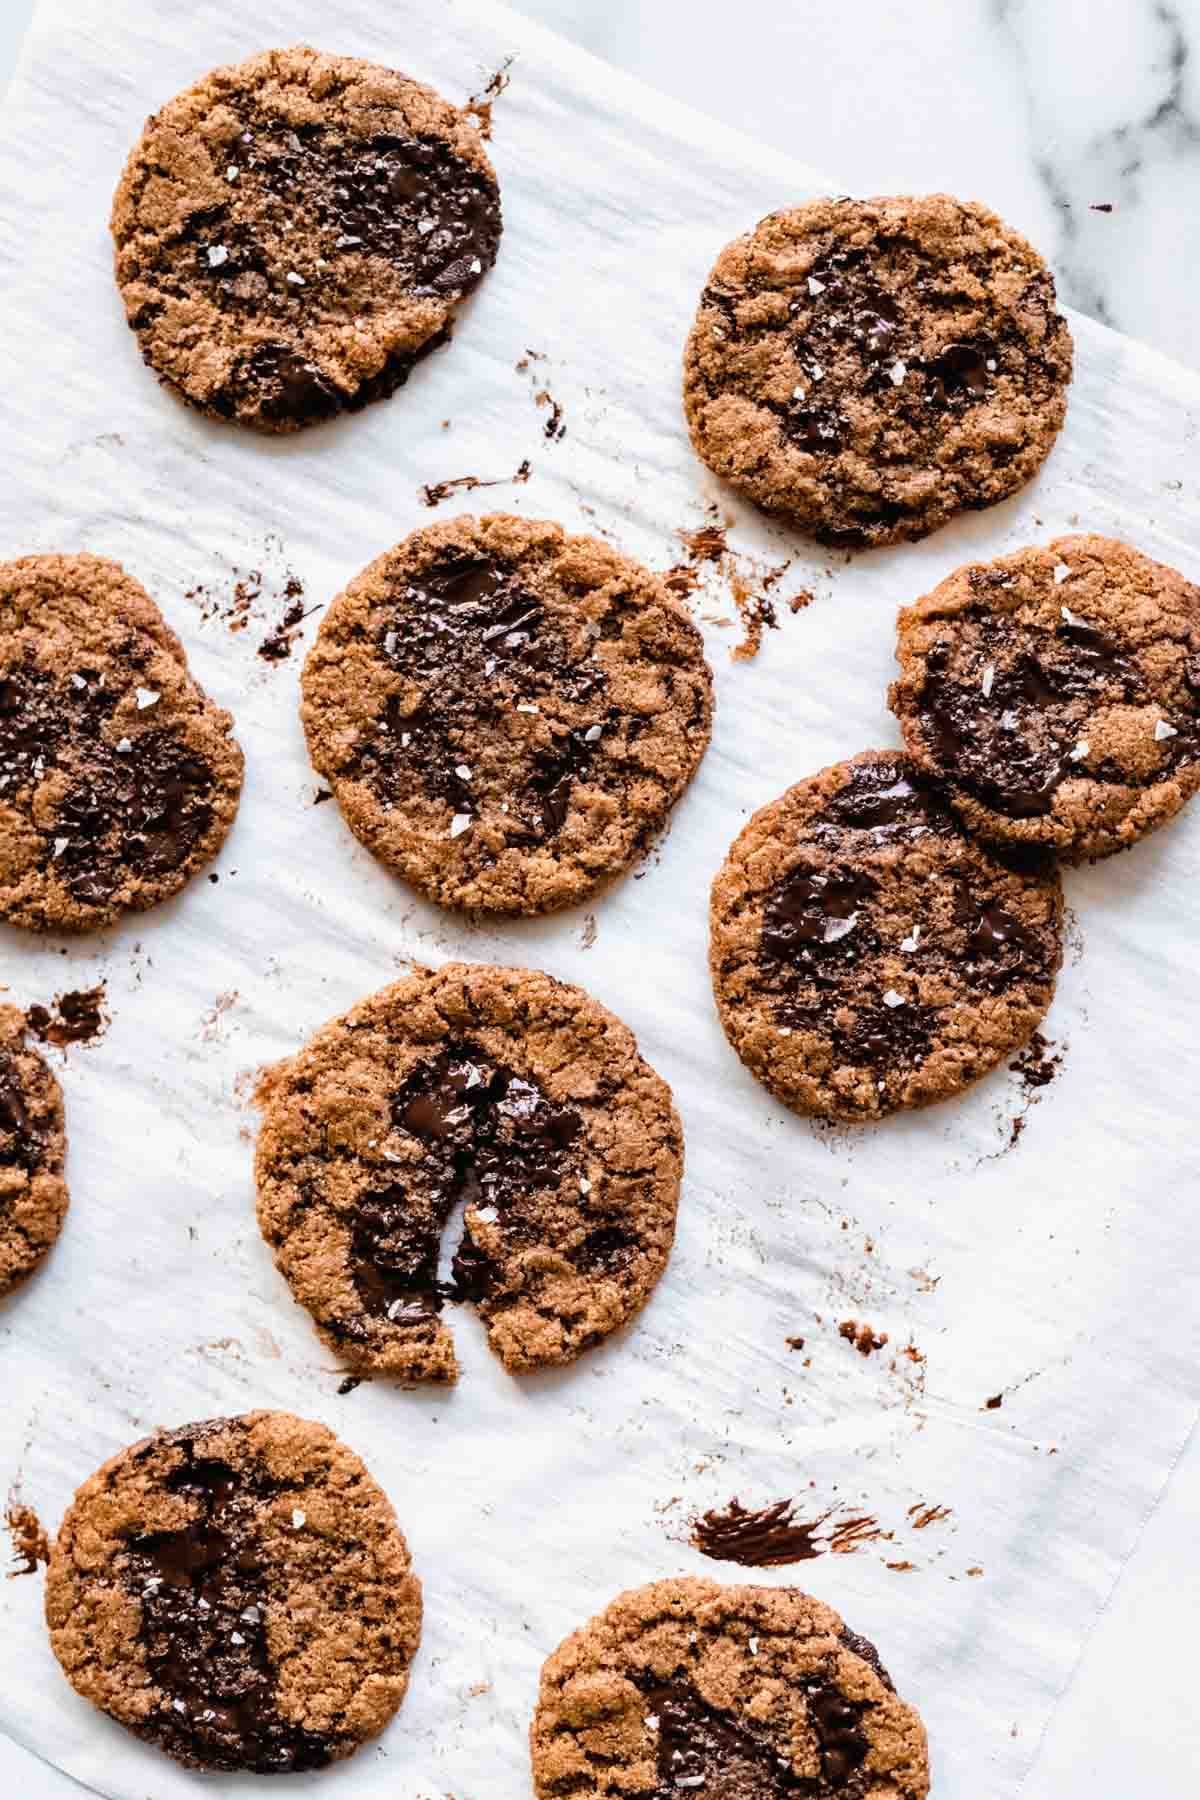 Gluten-free almond butter chocolate chunk cookies